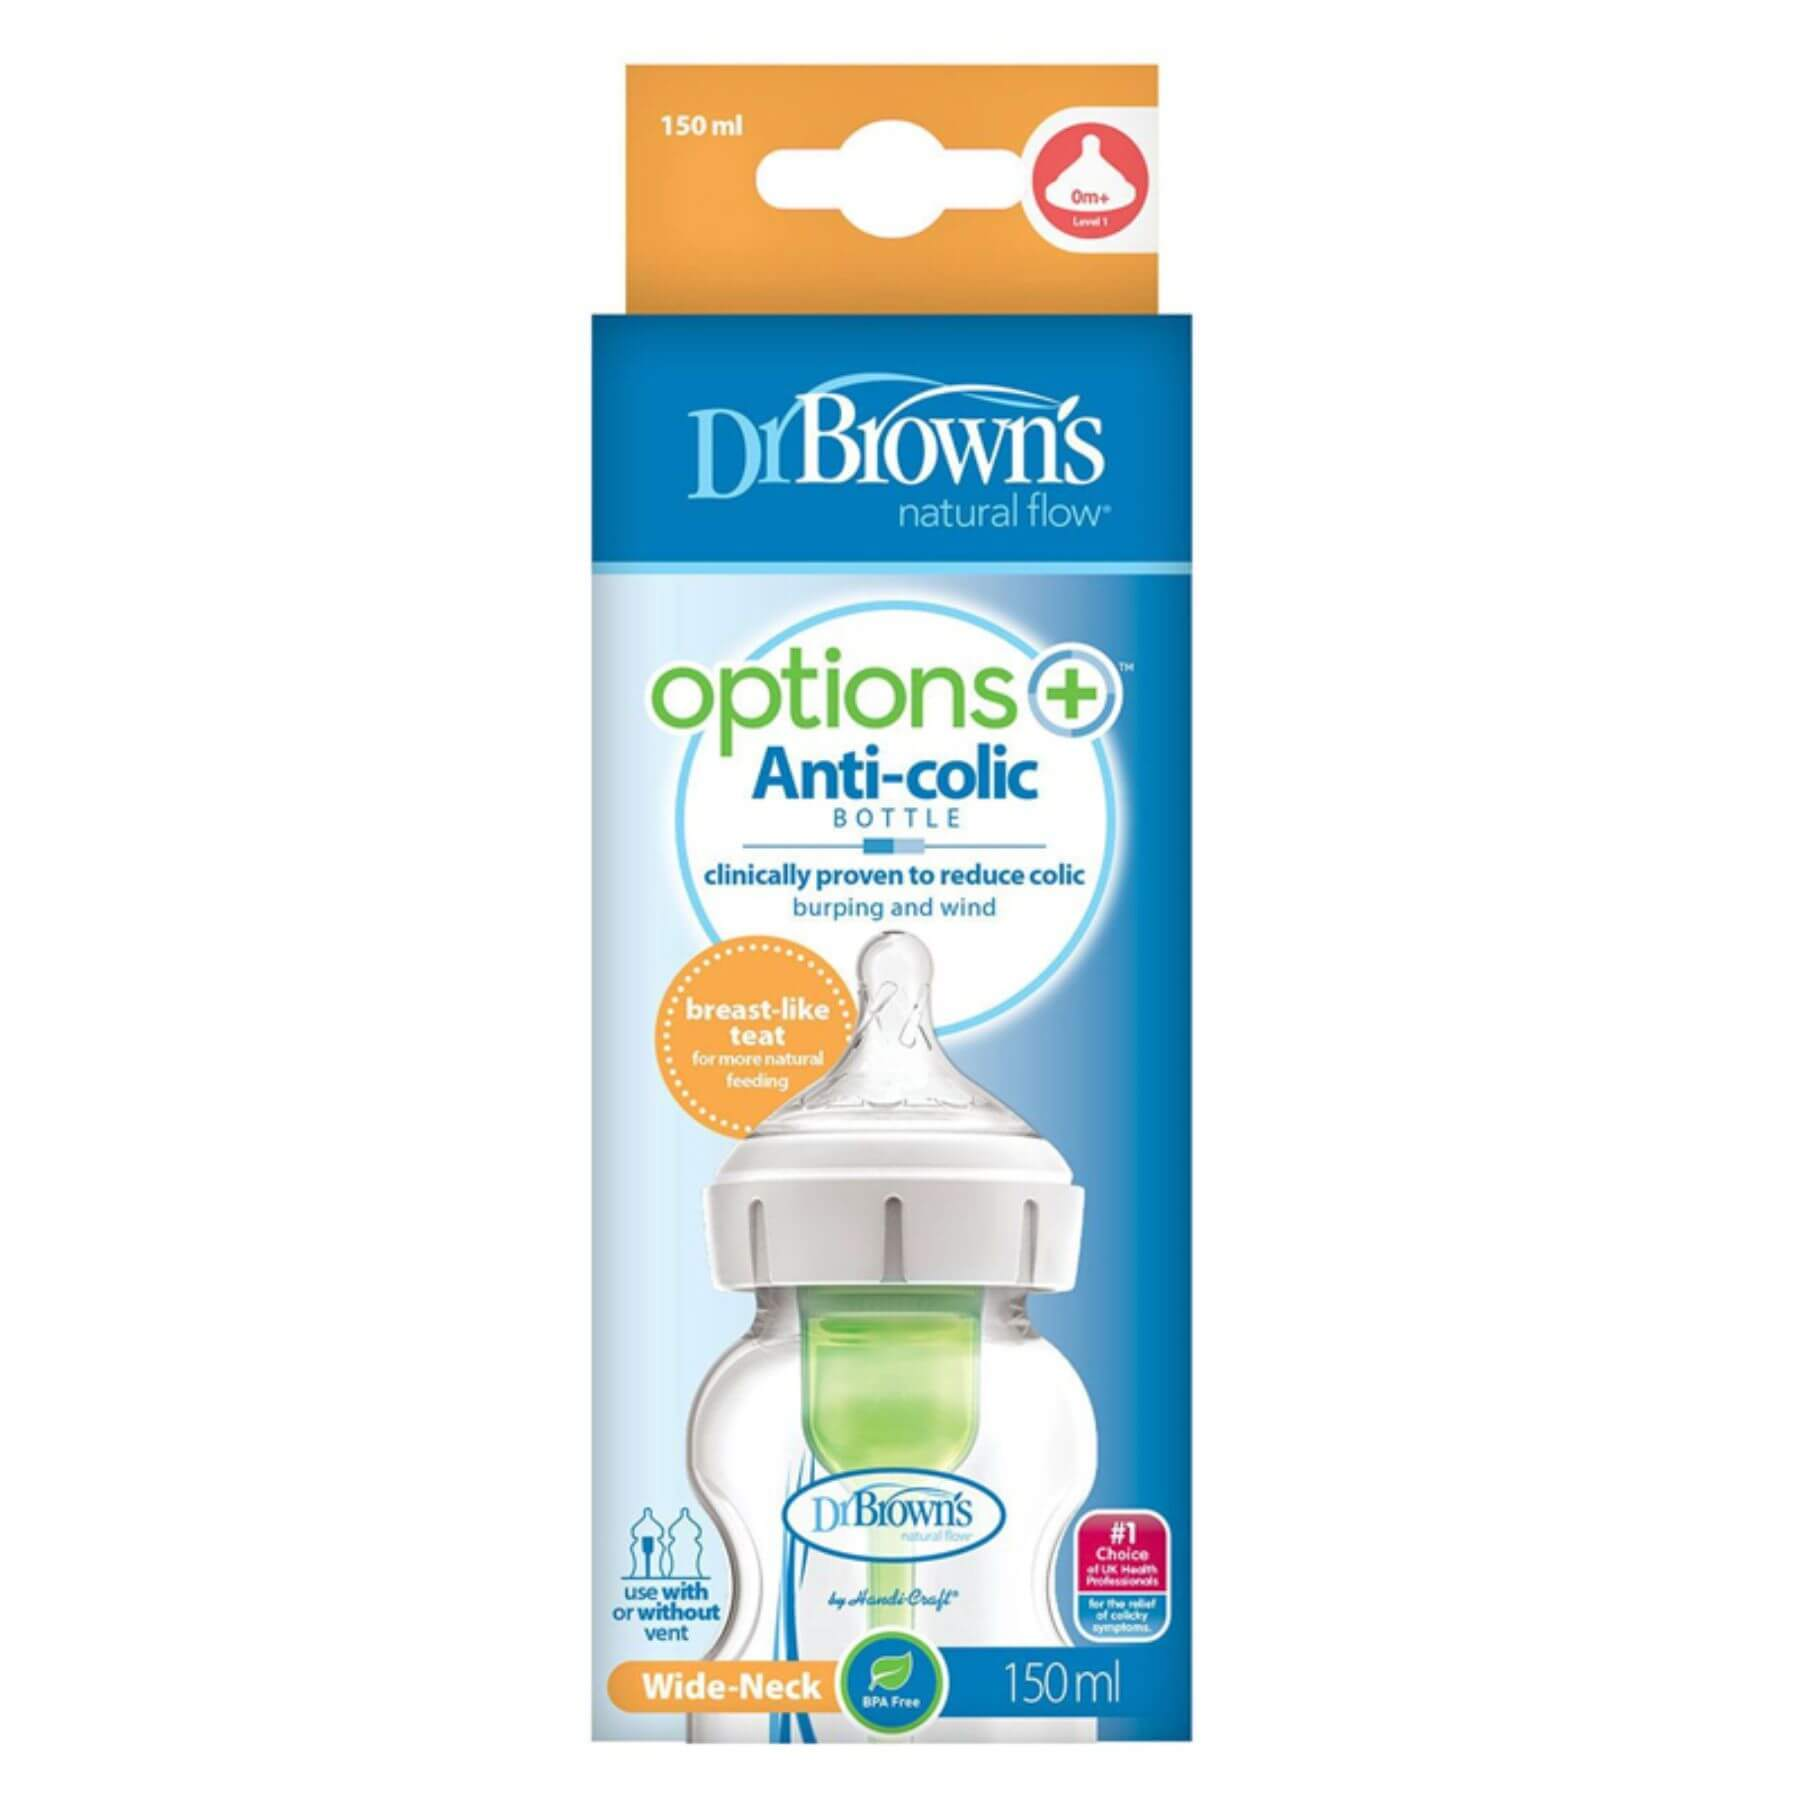 Dr Browns Options+ Bottle 150ml